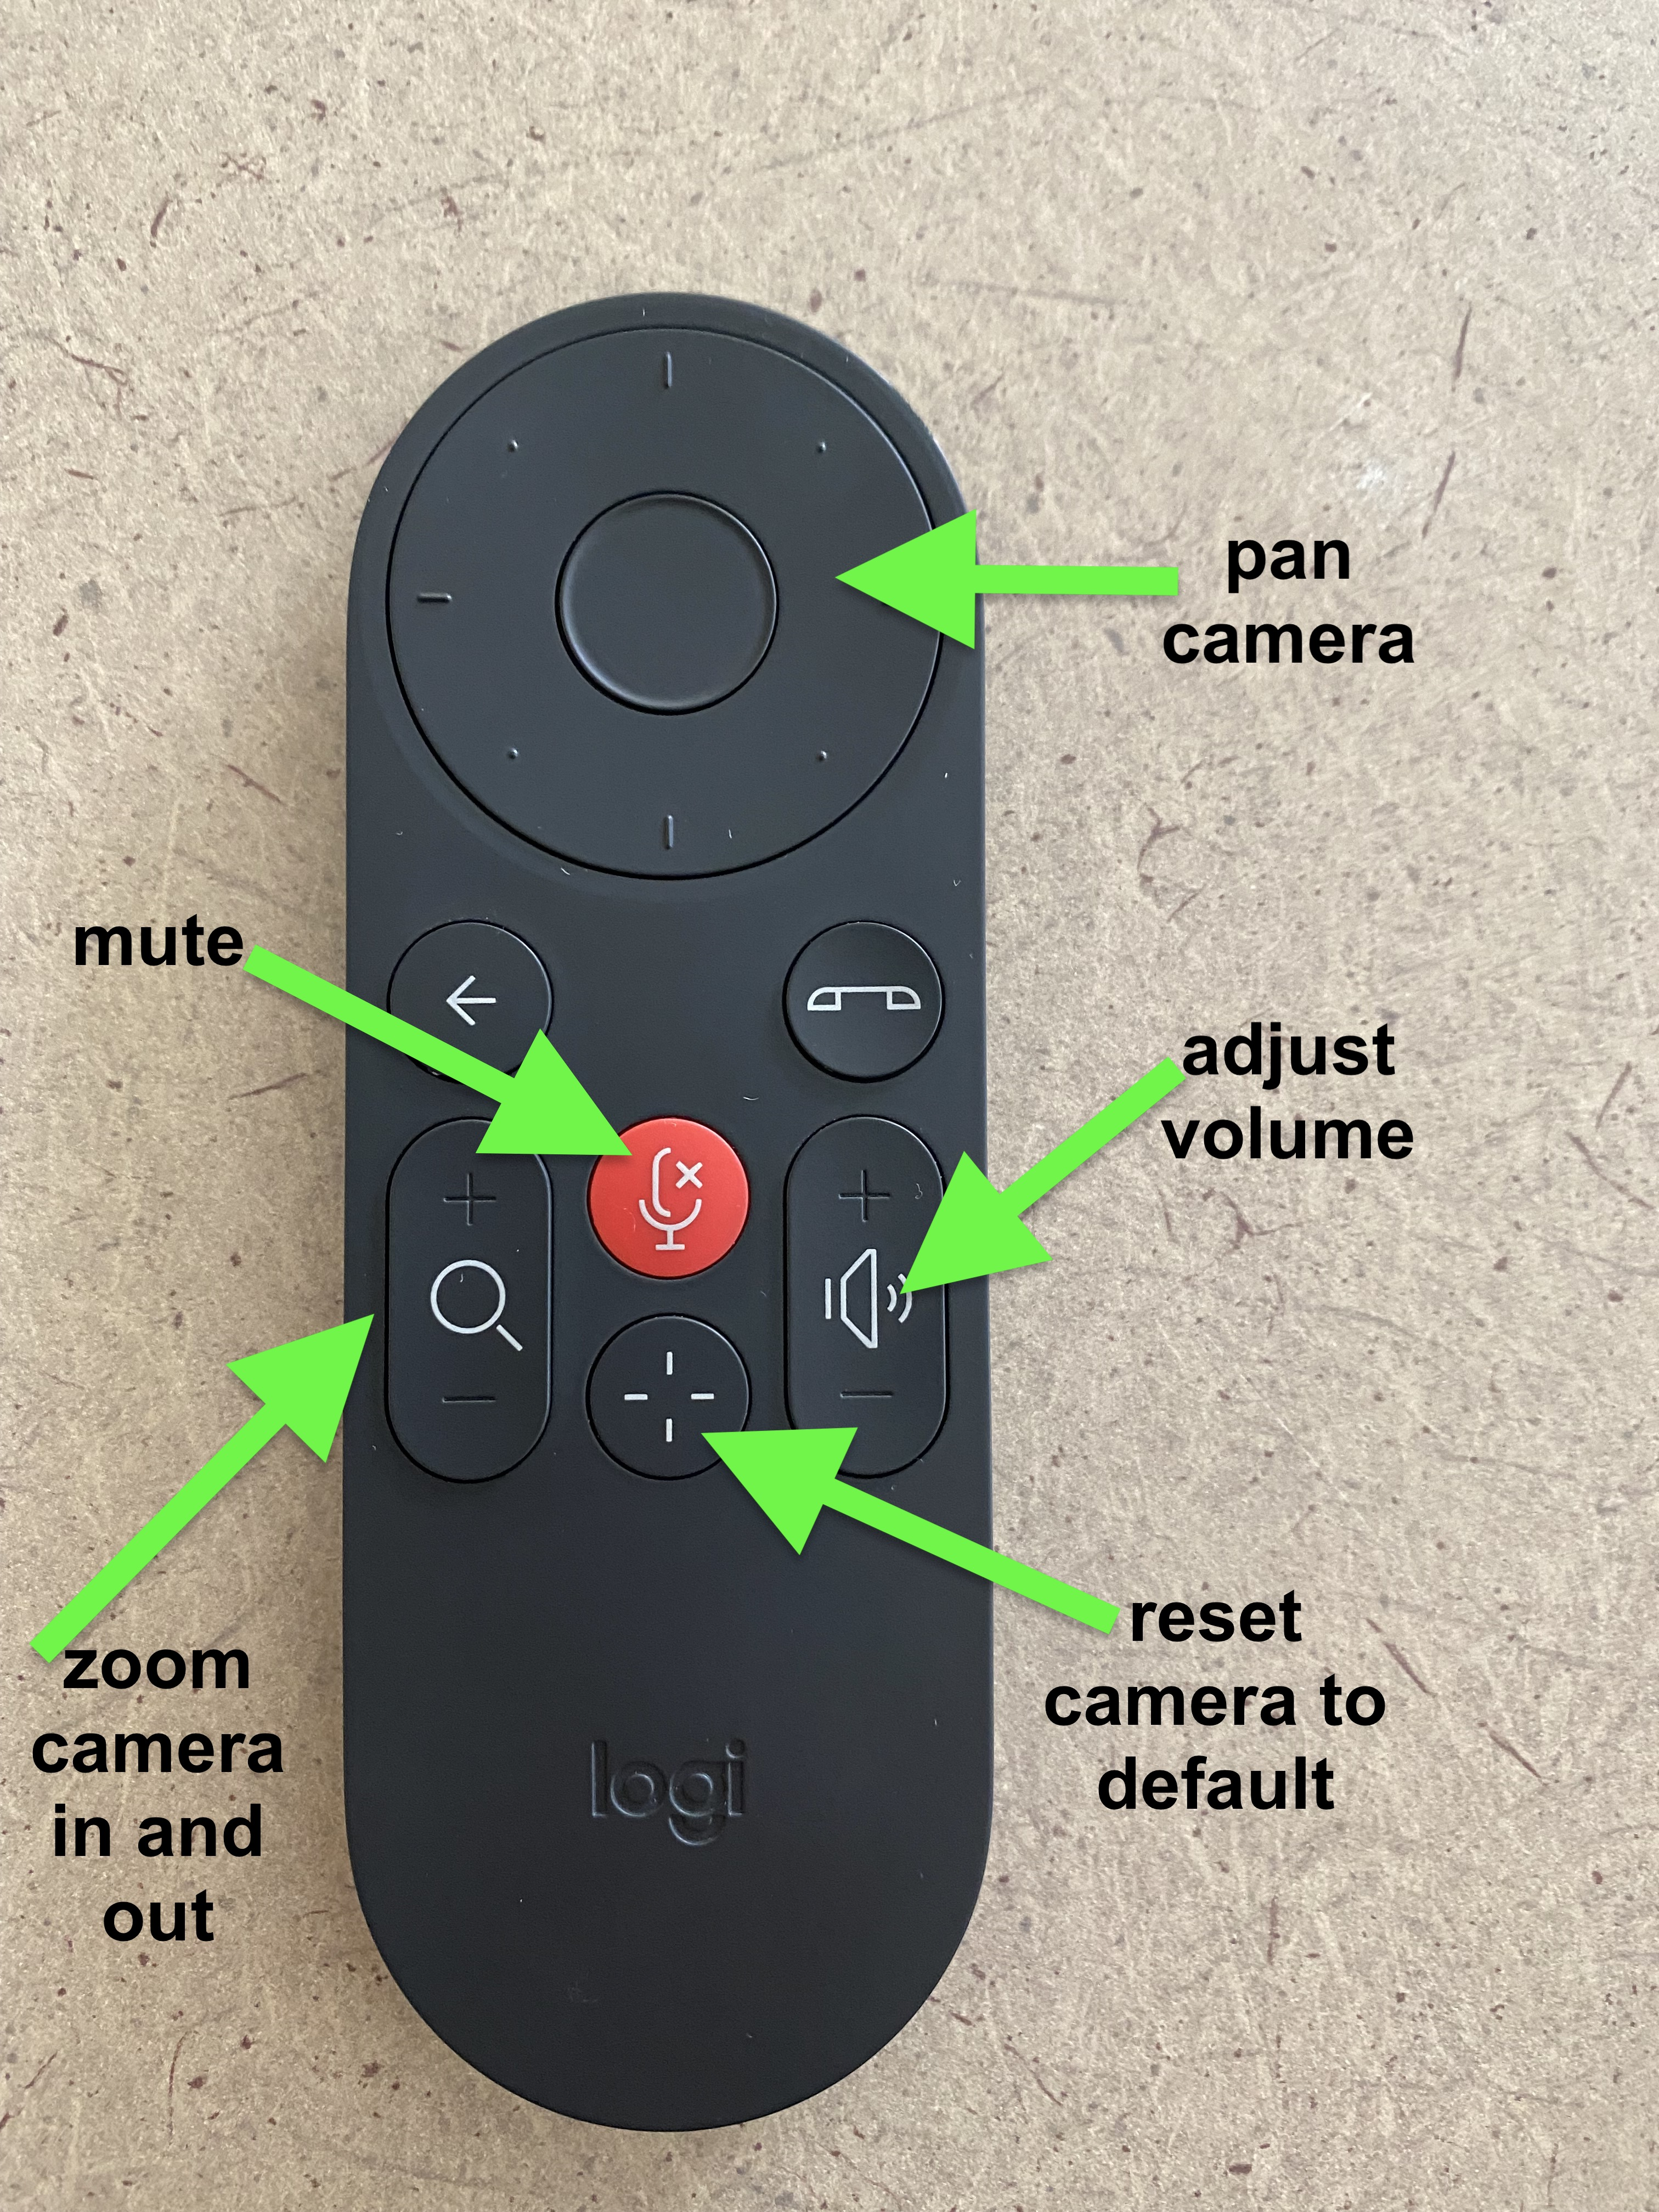 the logitech remote allows you to pan the camera, adjust volume, mute, zoom the camera in and out, and reset the camera to the default position